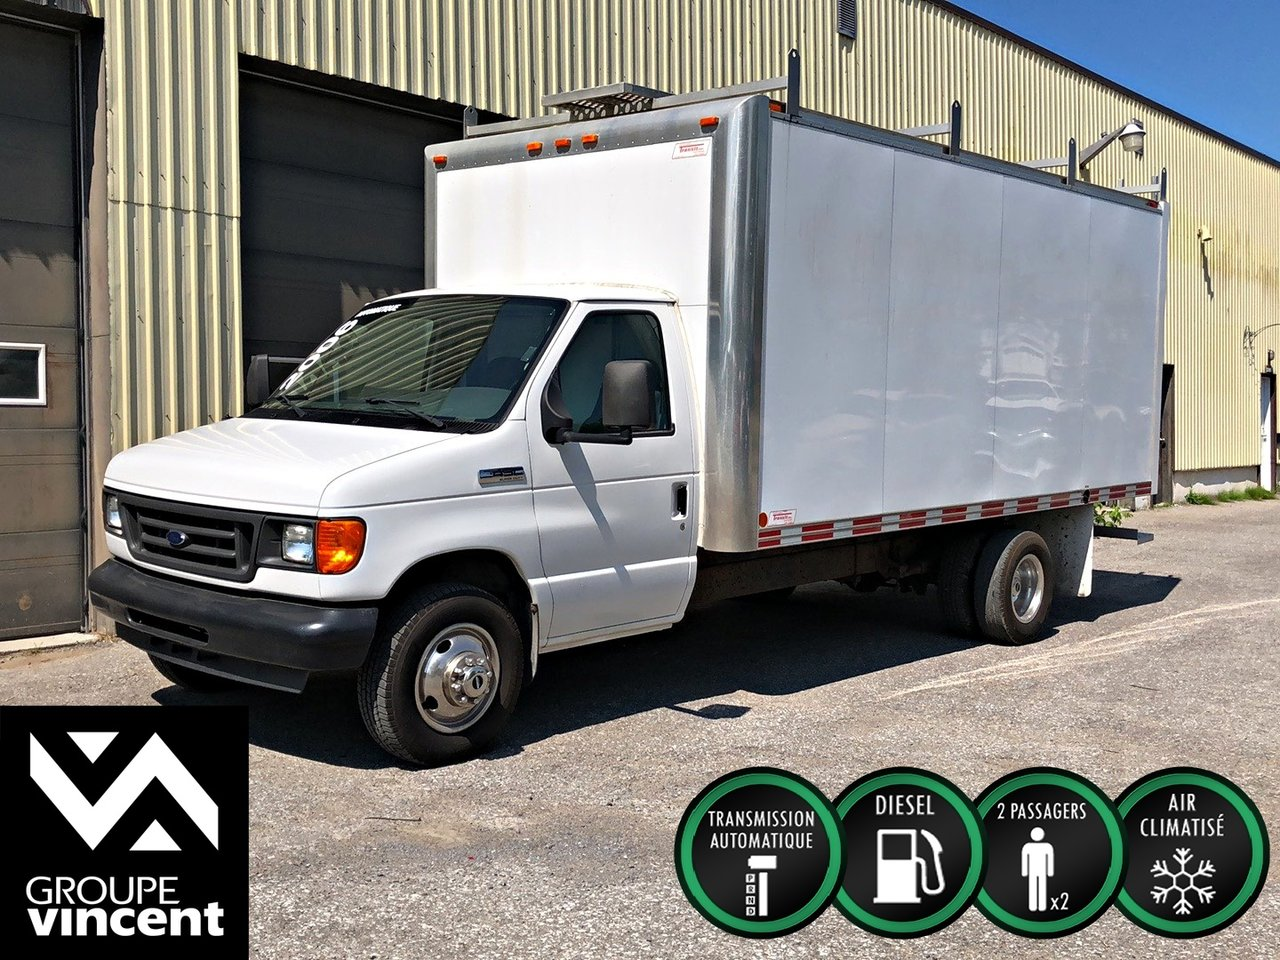 2006 Ford  Econoline cutaway E450 SUPER DUTY DIESEL **CUBE 16 PIEDS**